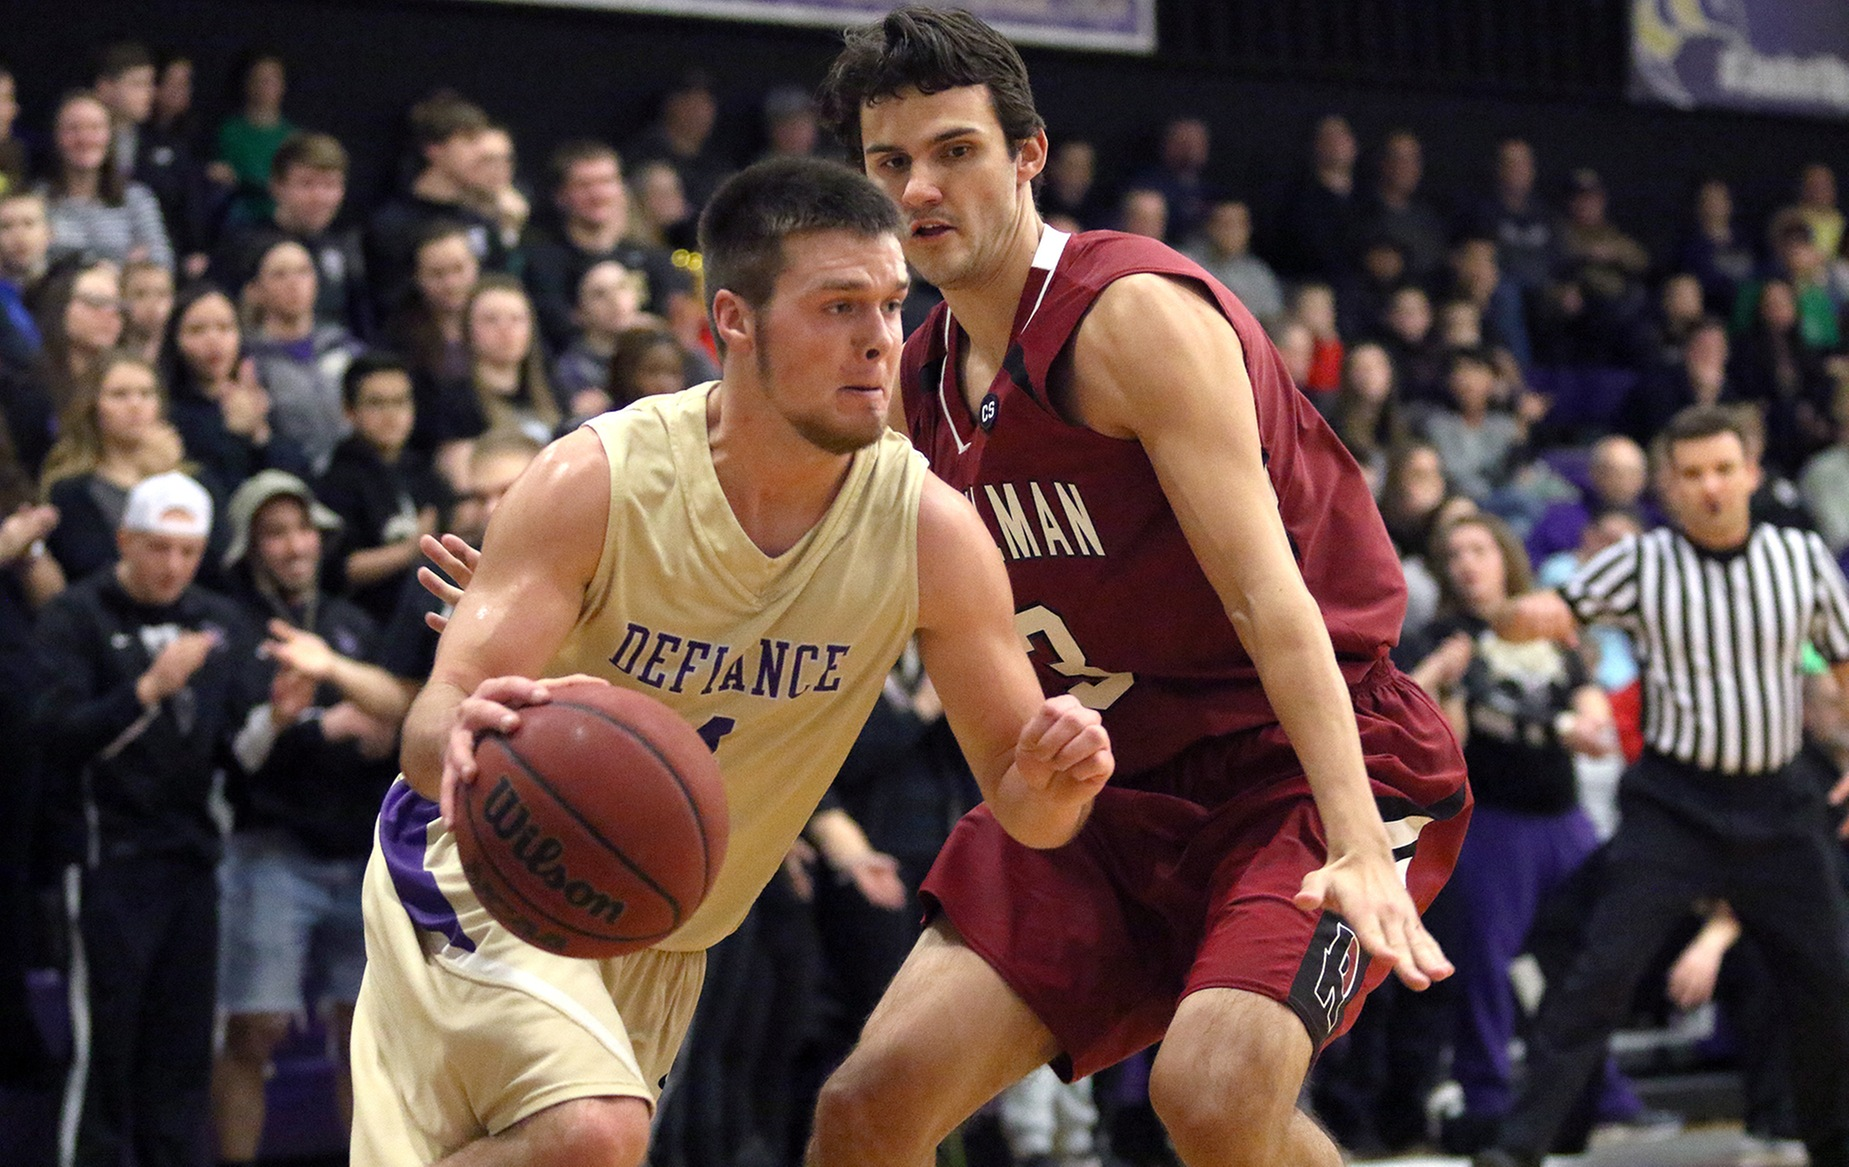 Men's Basketball Falls in HCAC Matchup Against MSJ